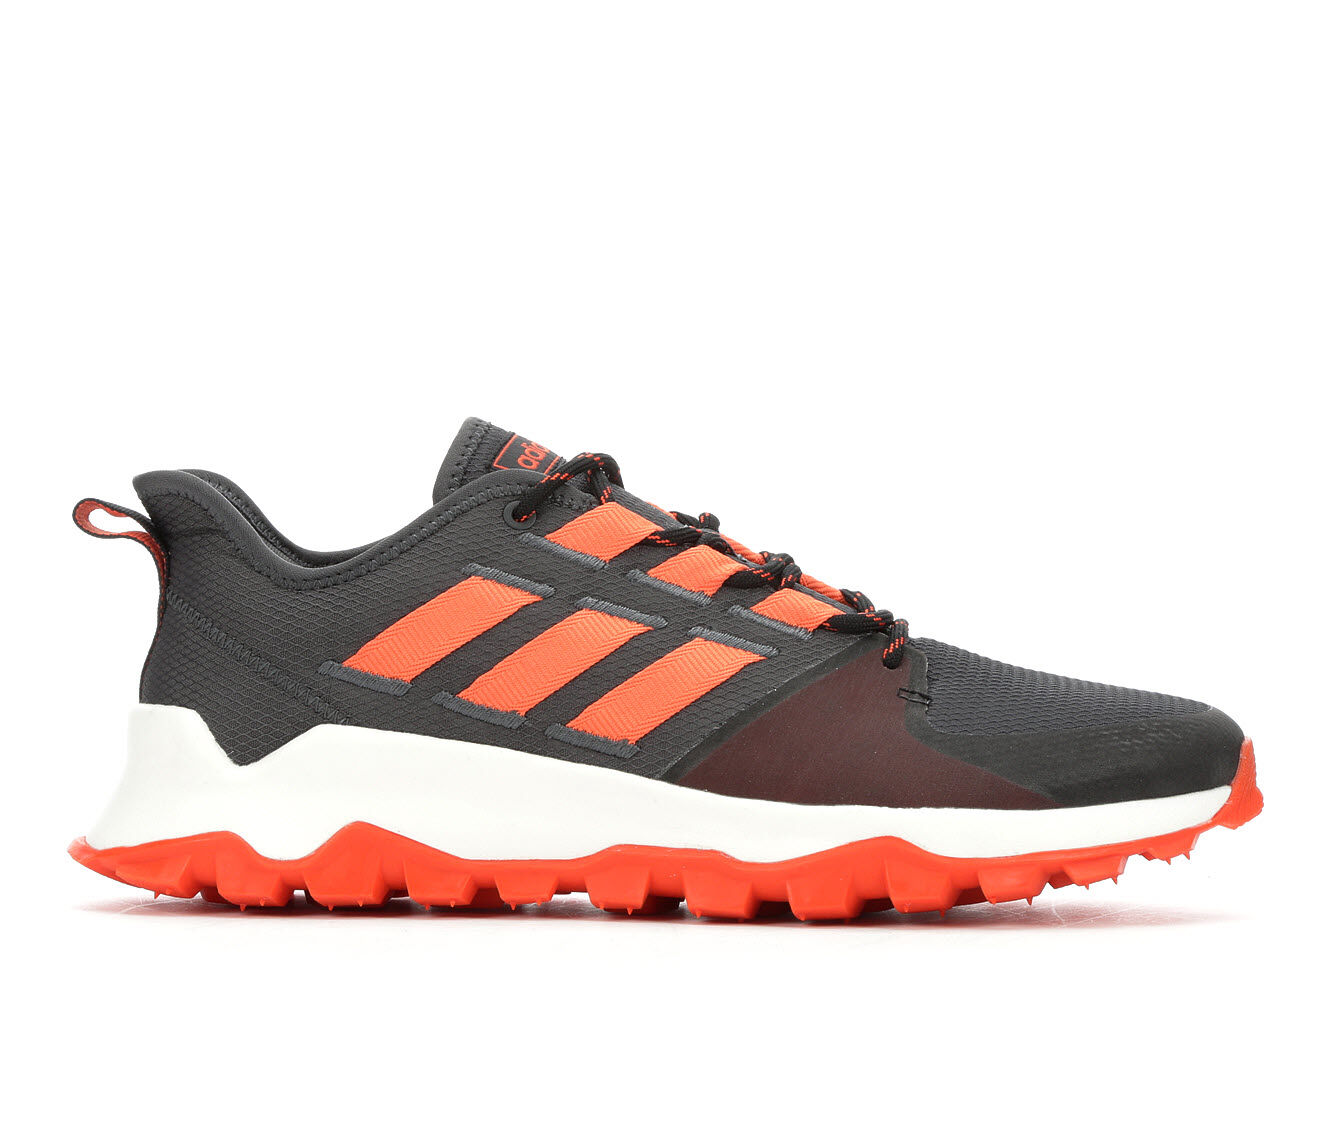 Men's Adidas Kanadia Trail Running Shoes Gry/Org/Wht